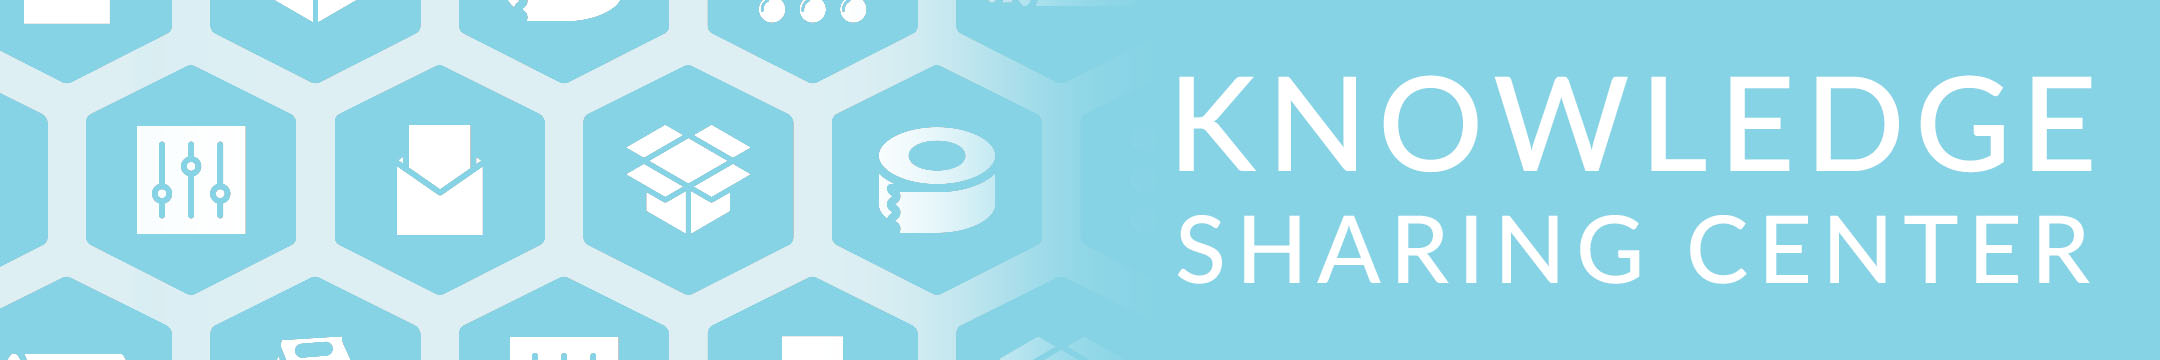 Knowledge Sharing Center